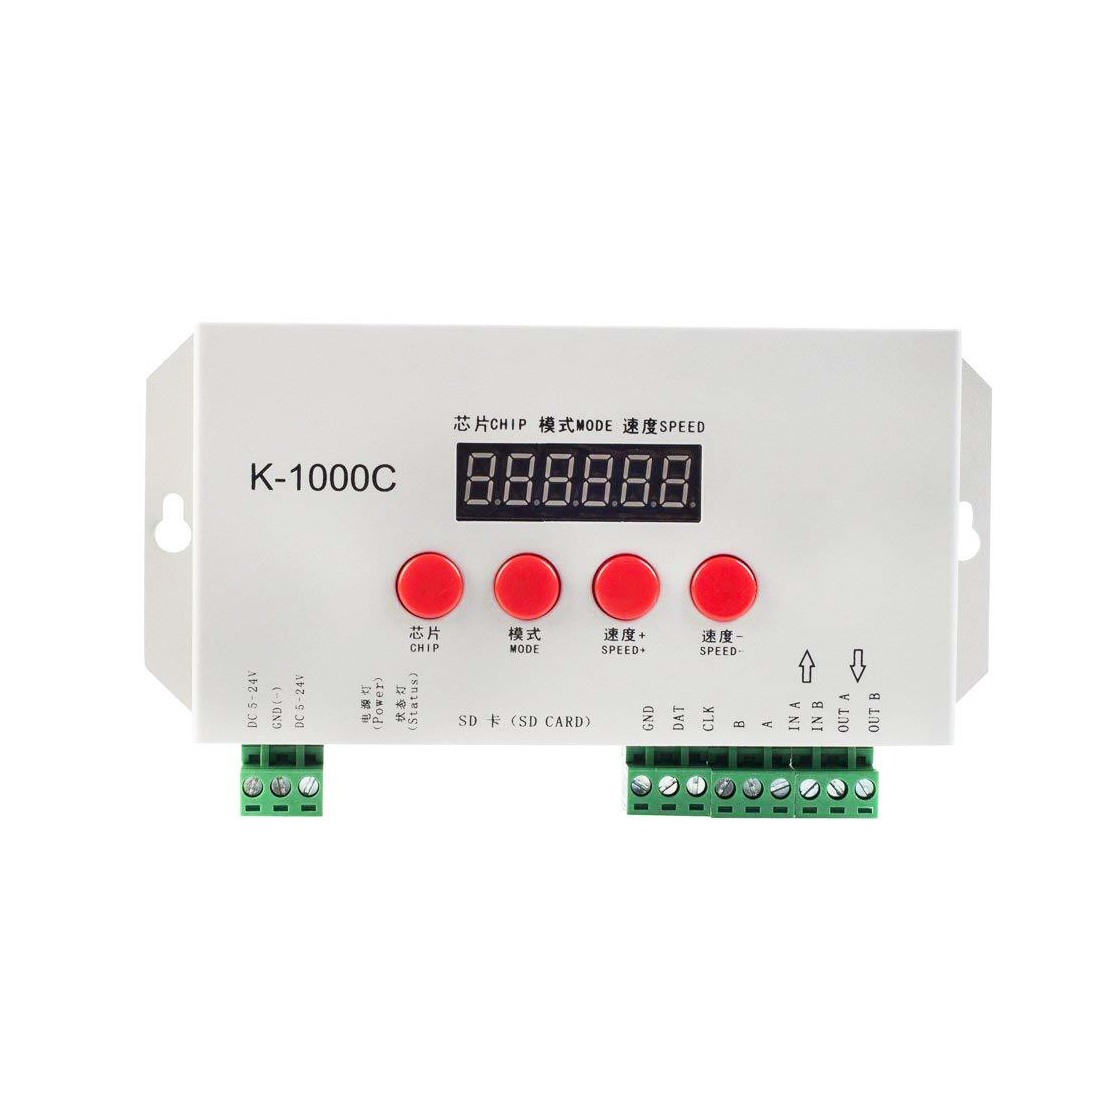 K-1000C T-1000S updated 2048 Pixels Addressable Controller with SD Card DC5-24V